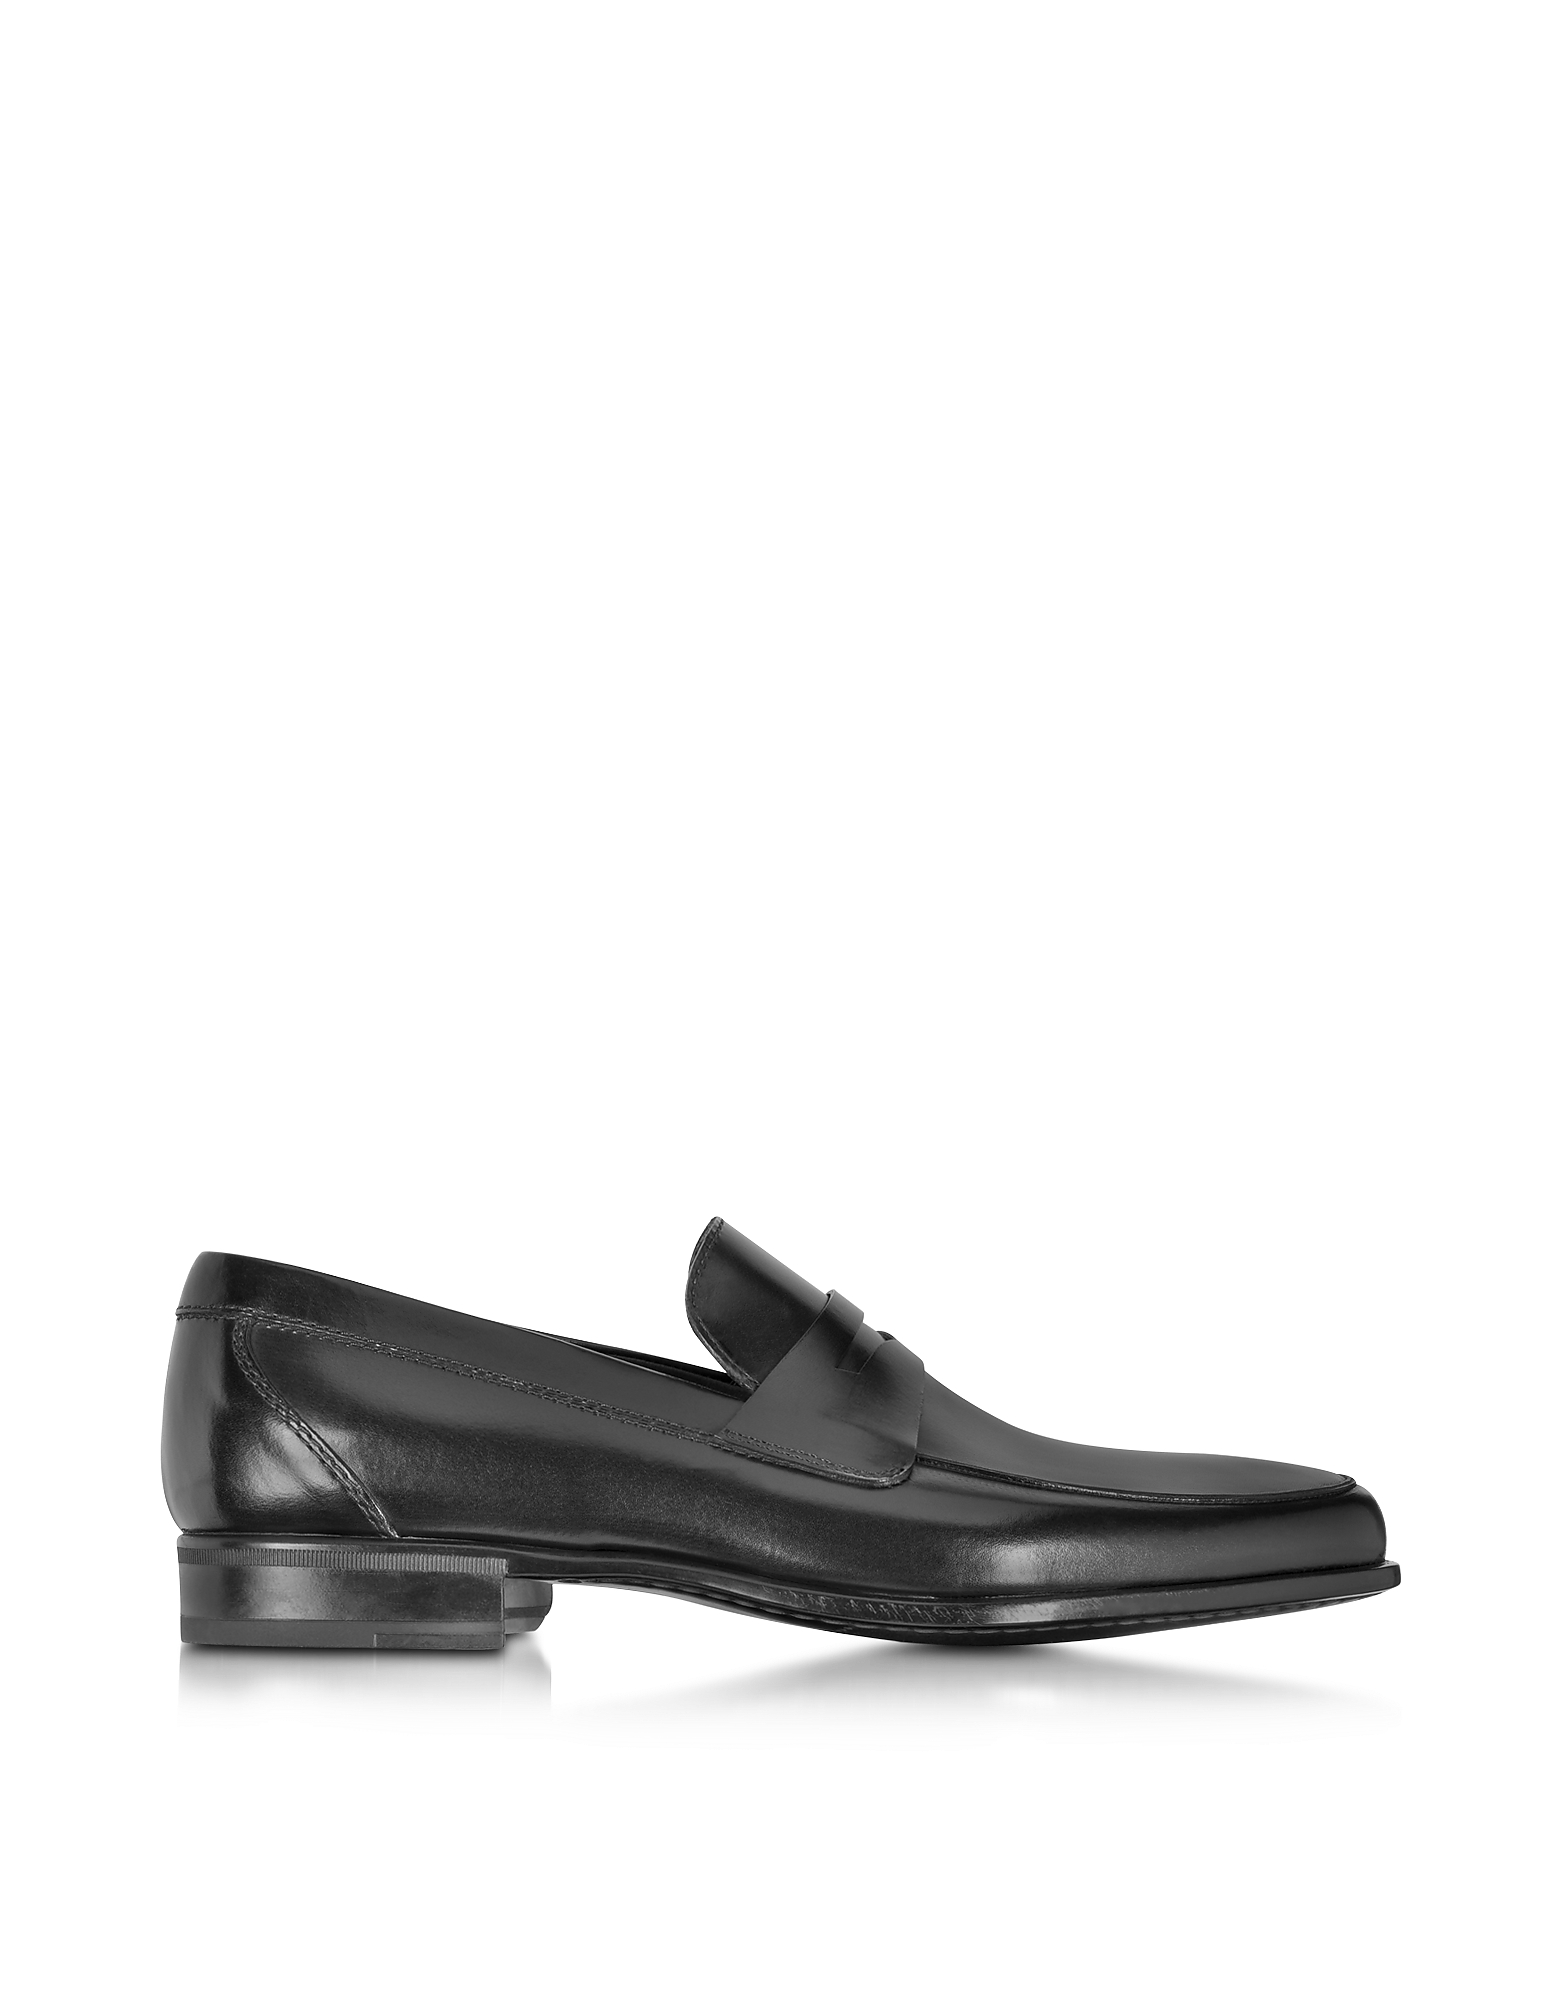 Moreschi Shoes, Graz Black Calf Leather Loafer Shoe w/Rubber Sole